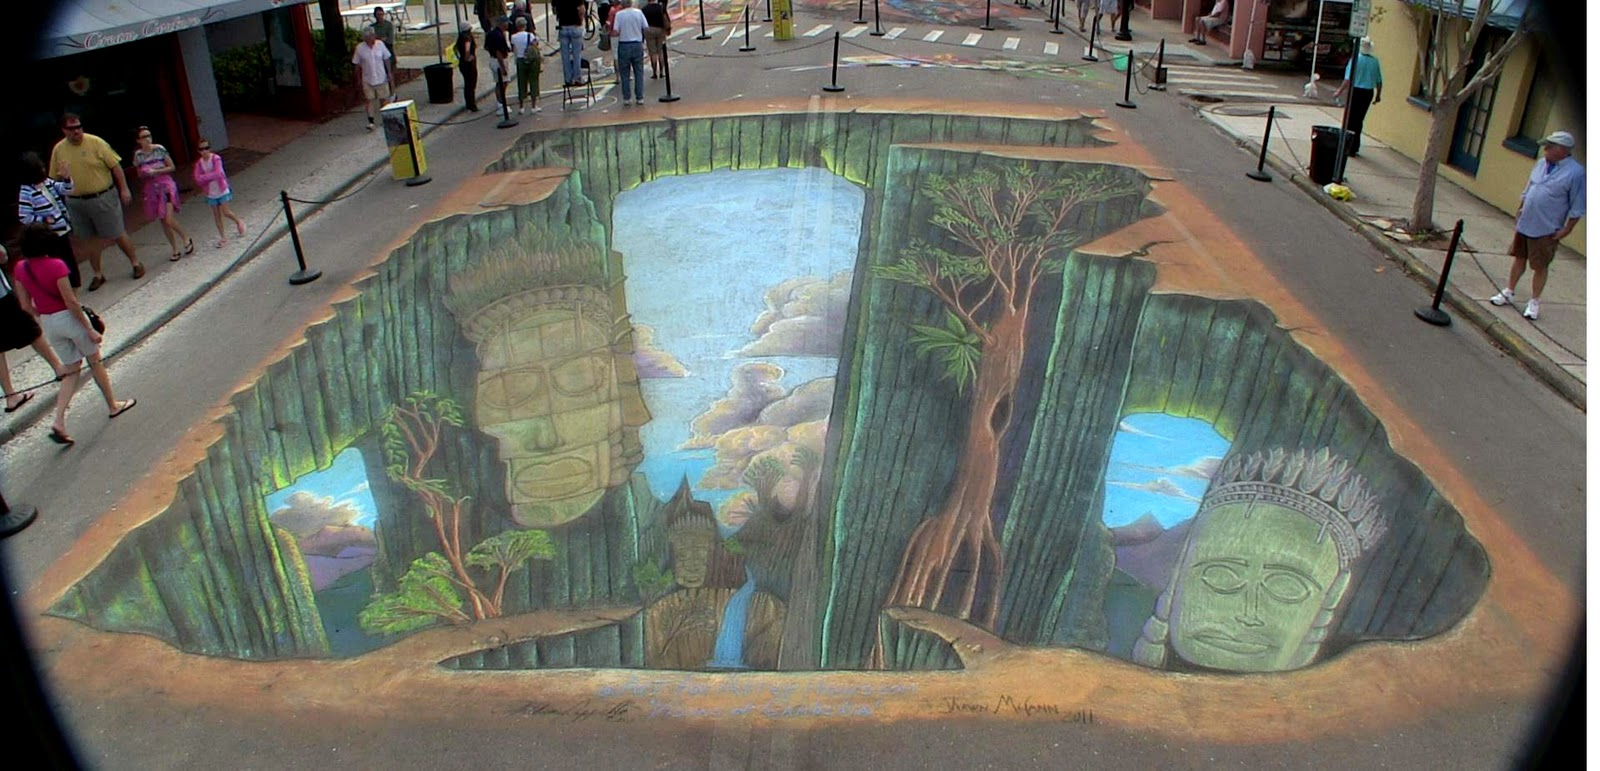 Shawn mccann street painting 3d wall murals regulare for Art of mural painting